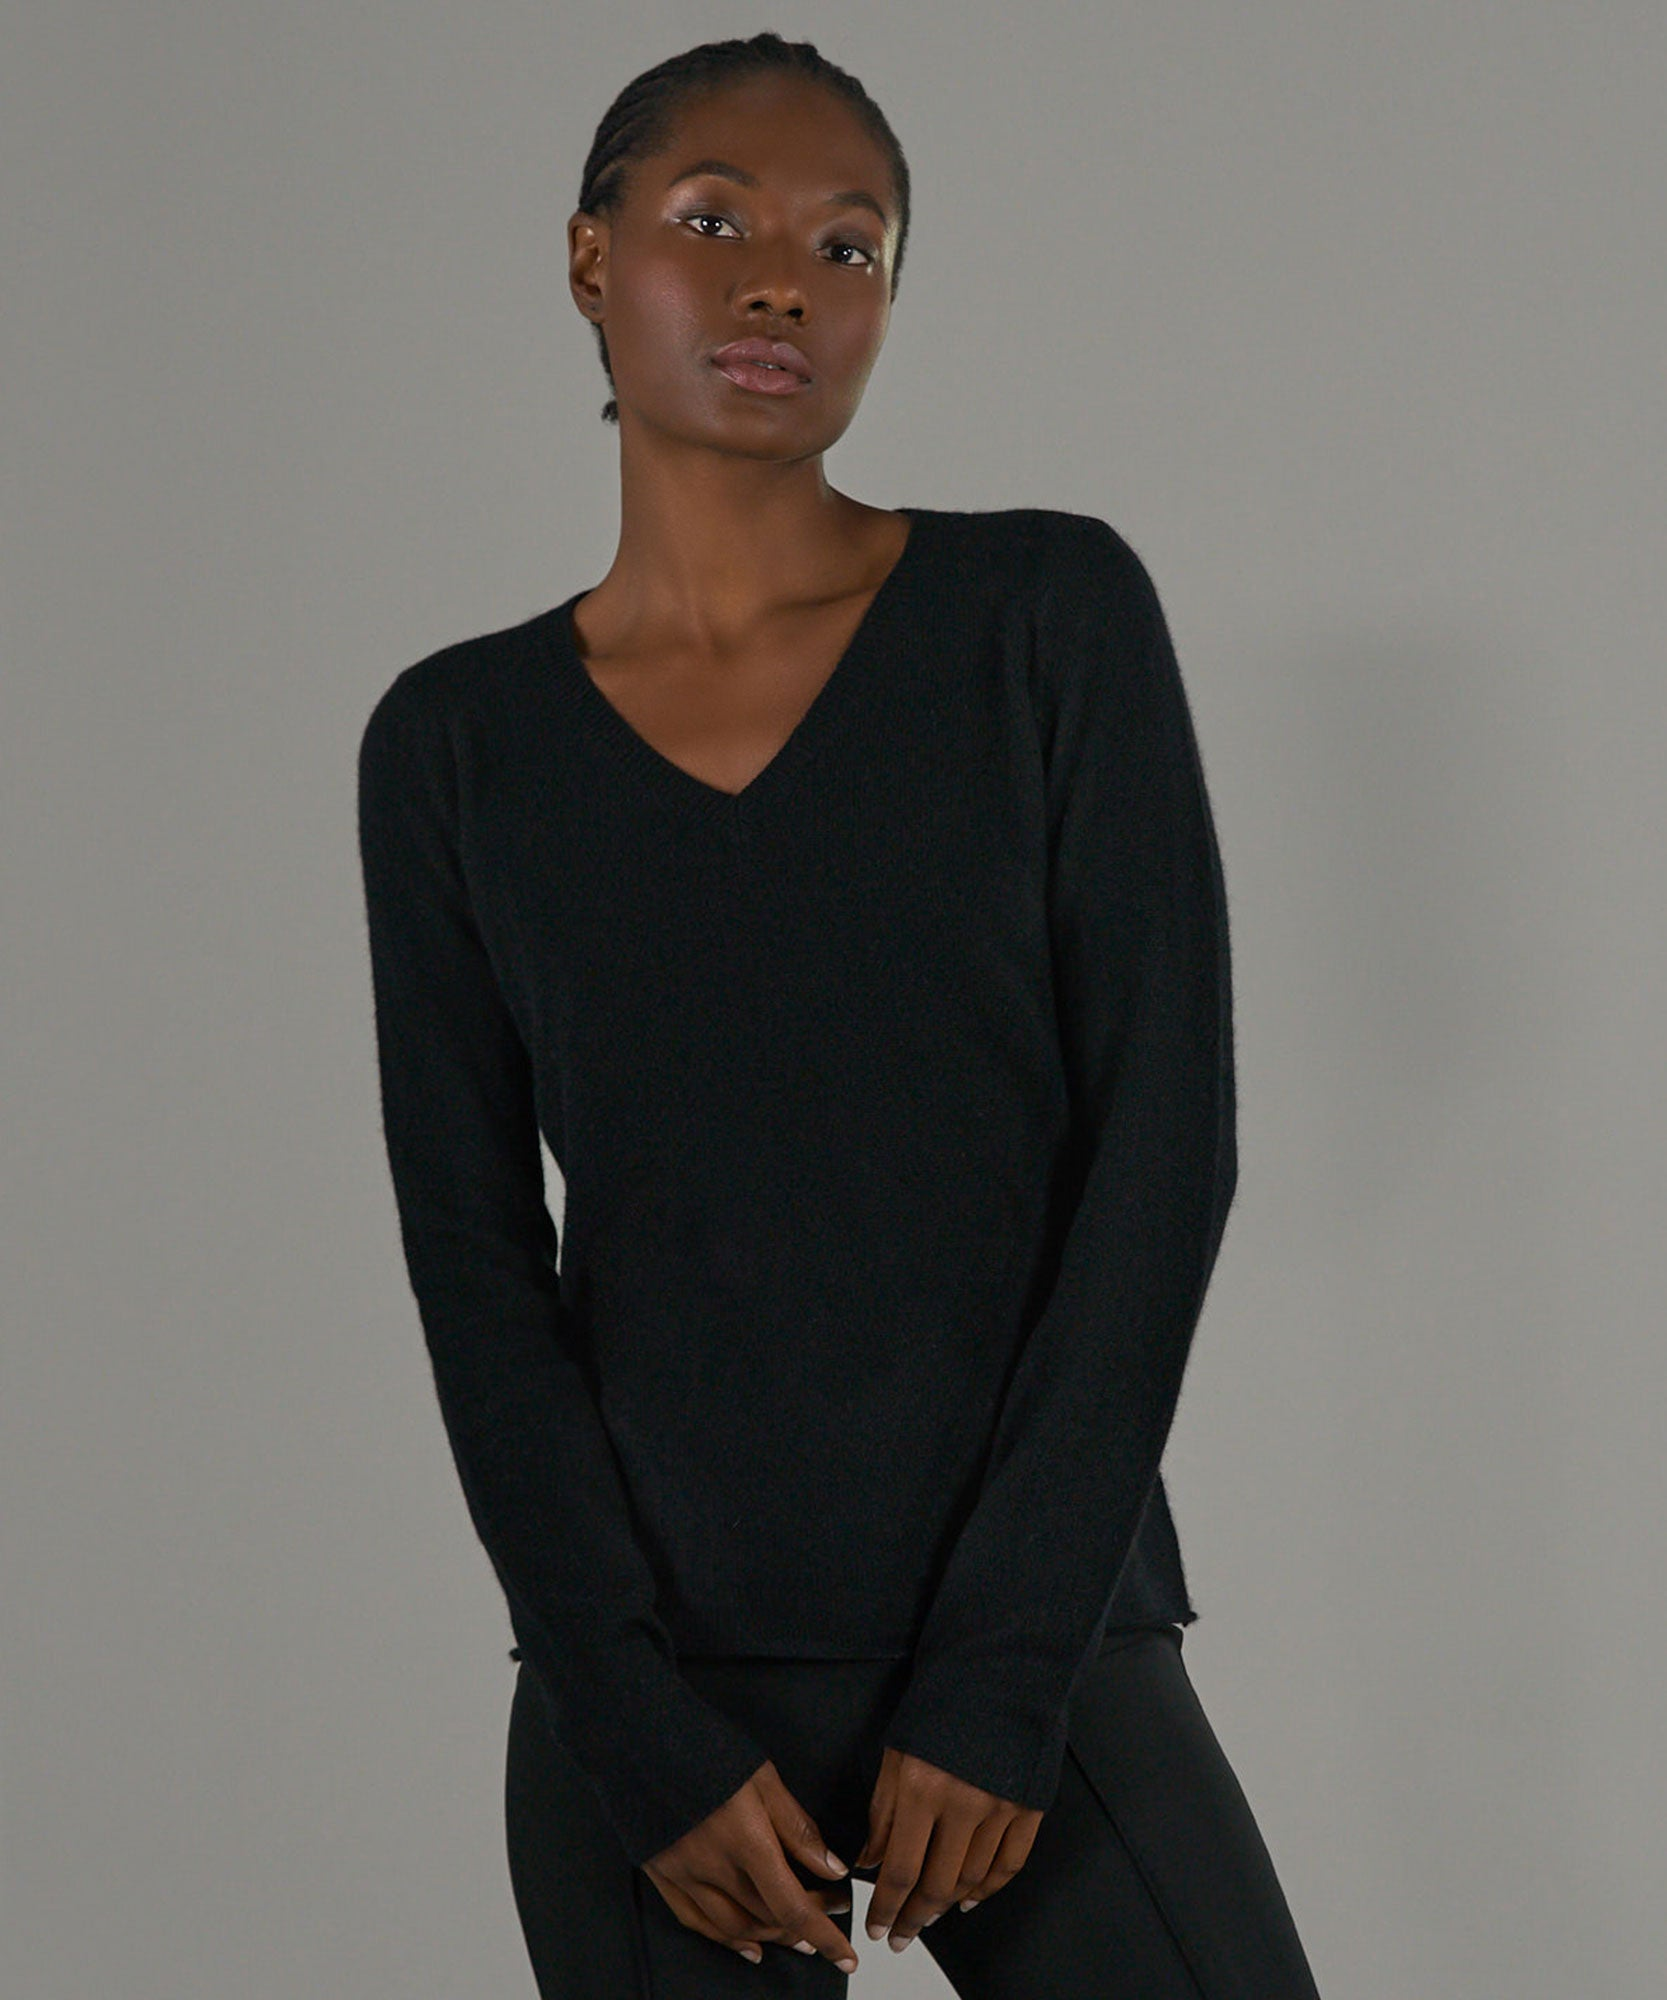 Black Cashmere V-Neck Sweater - Women's Luxe Sweater by ATM Anthony Thomas Melillo